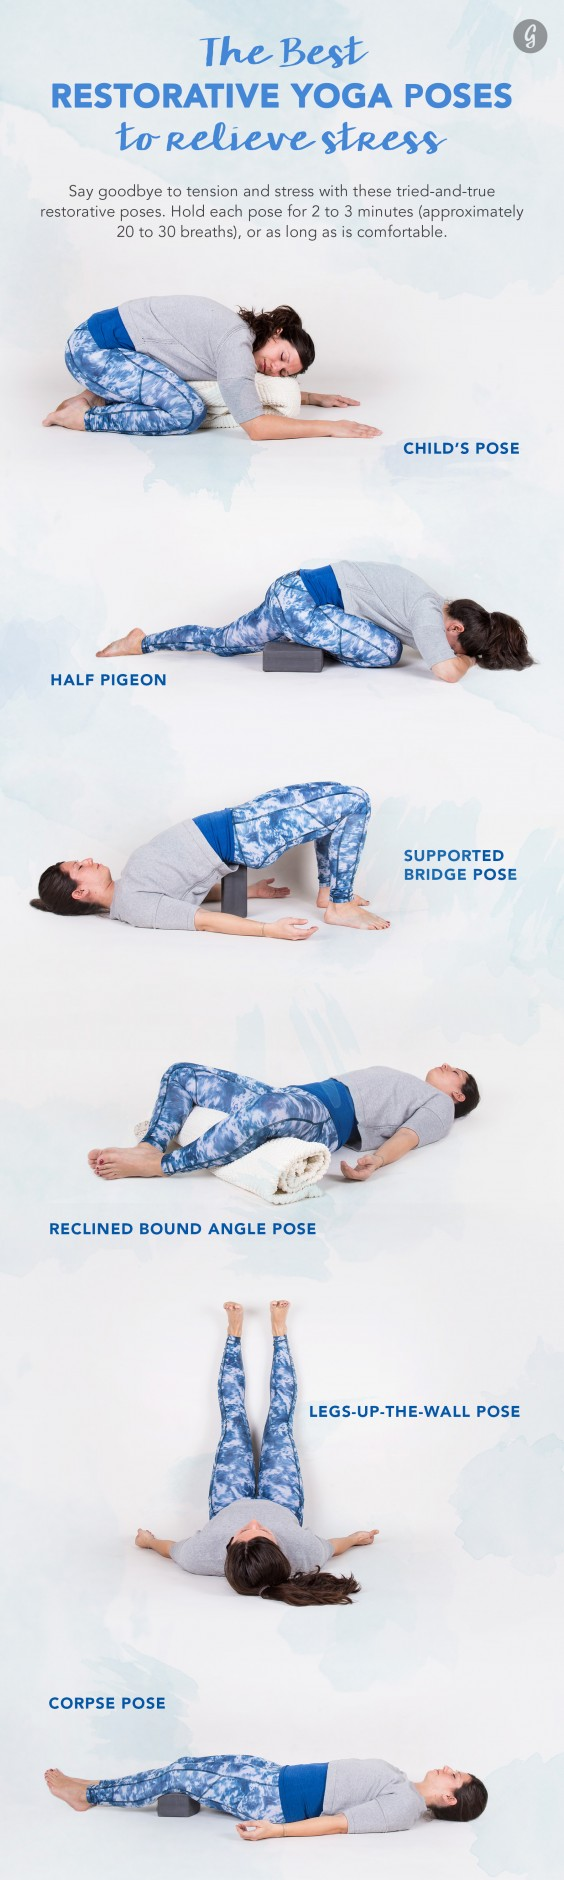 Restorative Yoga: The Best Restorative Yoga Poses to Relieve